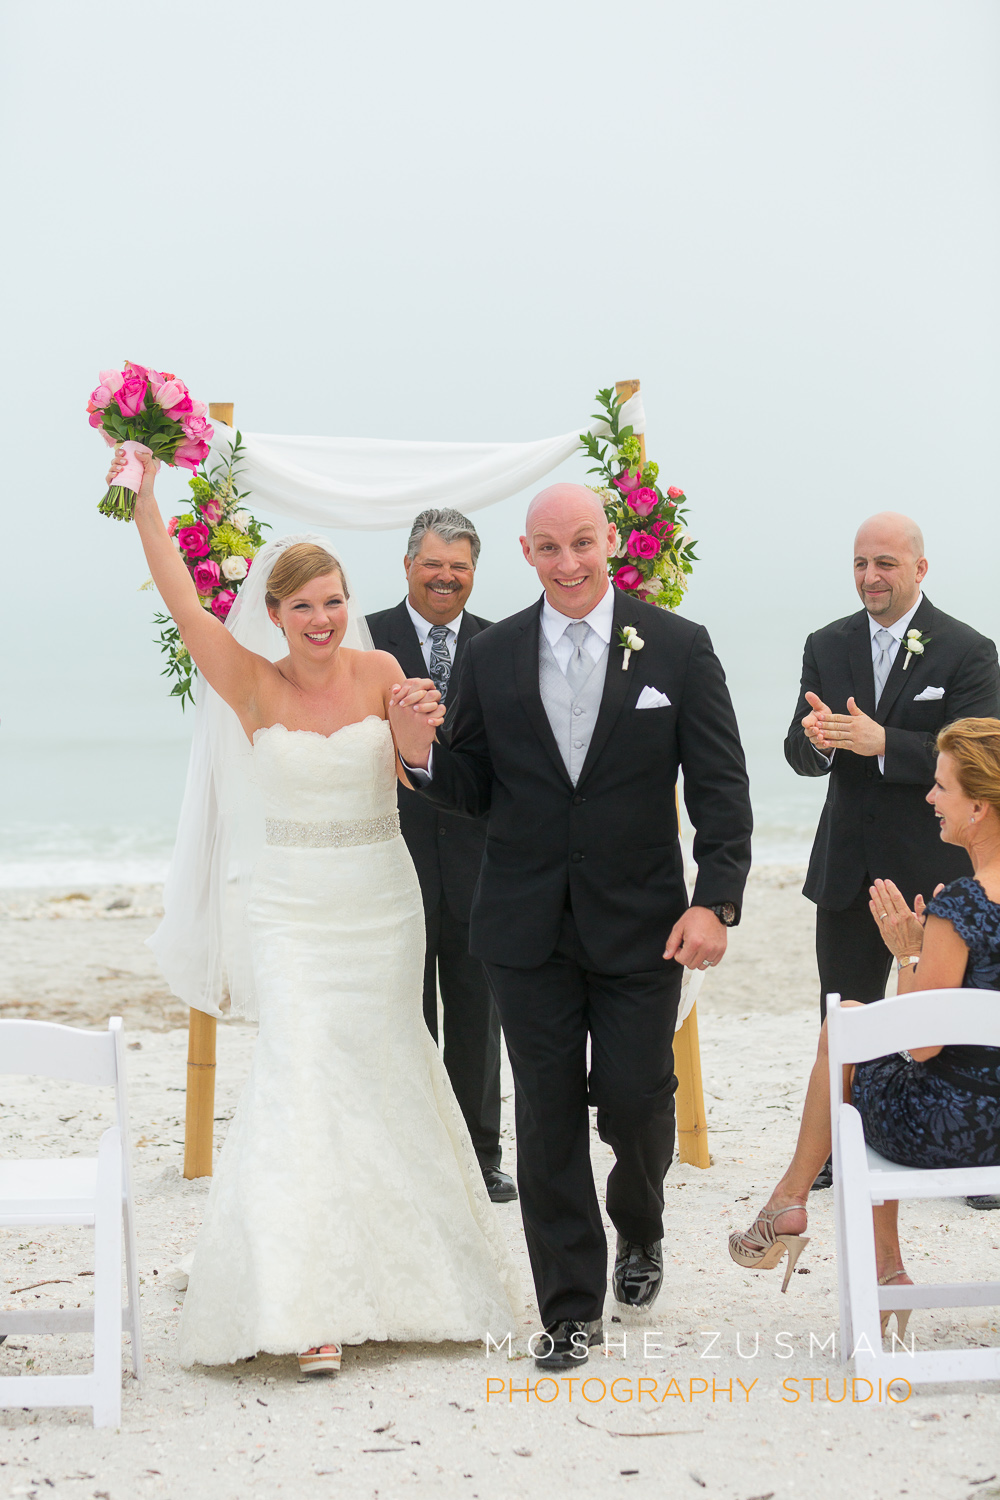 Sanibel-Island-Florida-Wedding-Moshe-Zusman-Photography-35.jpg